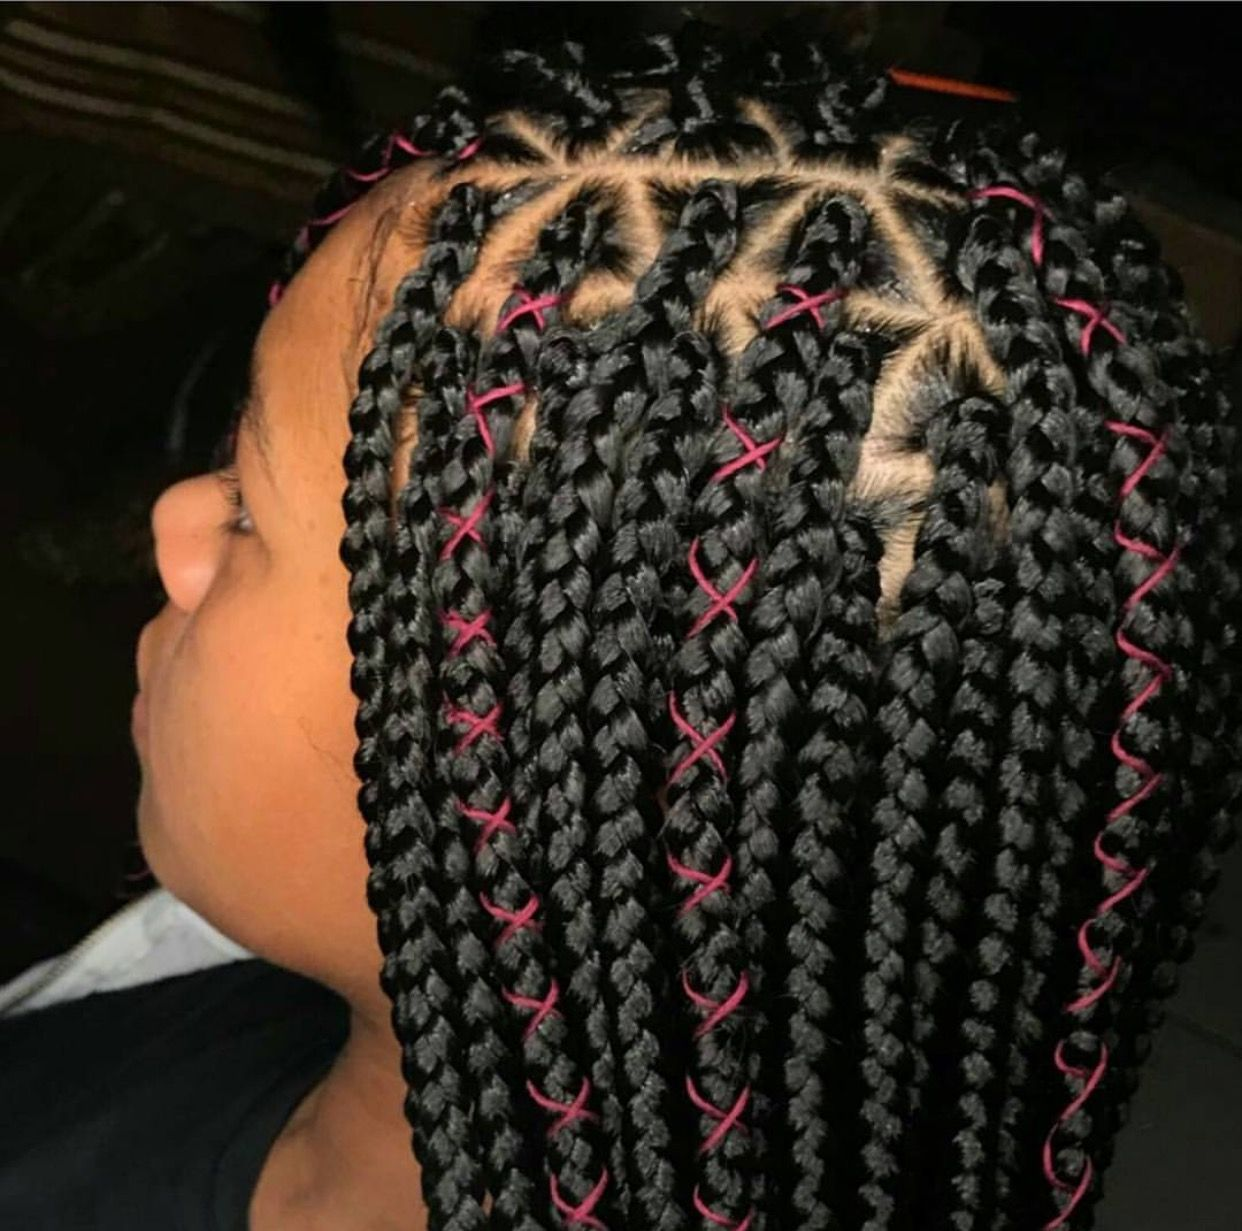 Find it at ayeyoryann followlikecomment boxed braided